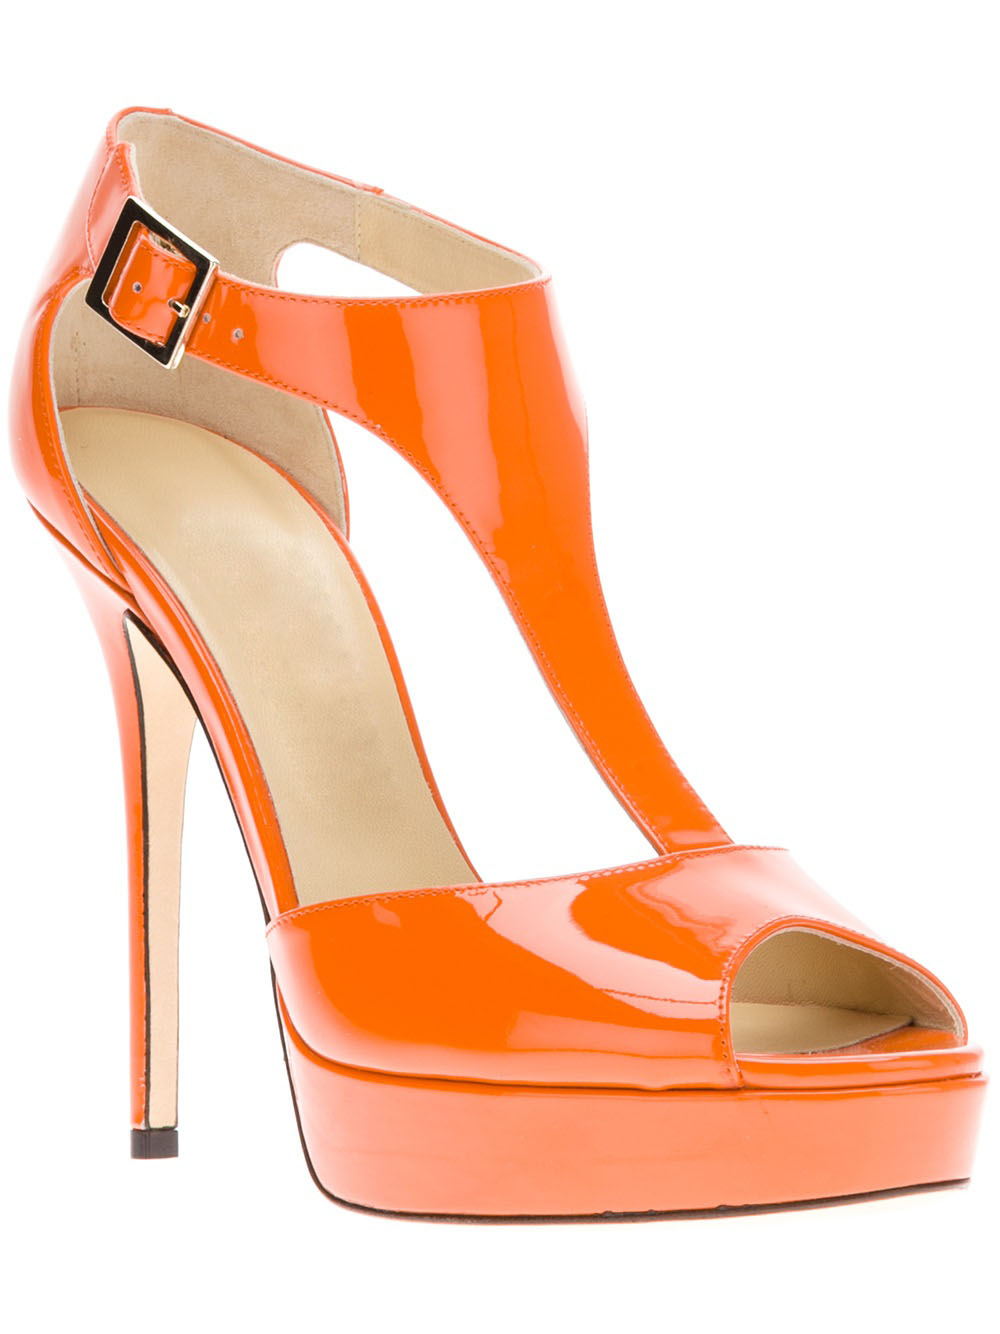 Popular Orange Platform-Buy Cheap Orange Platform lots from China